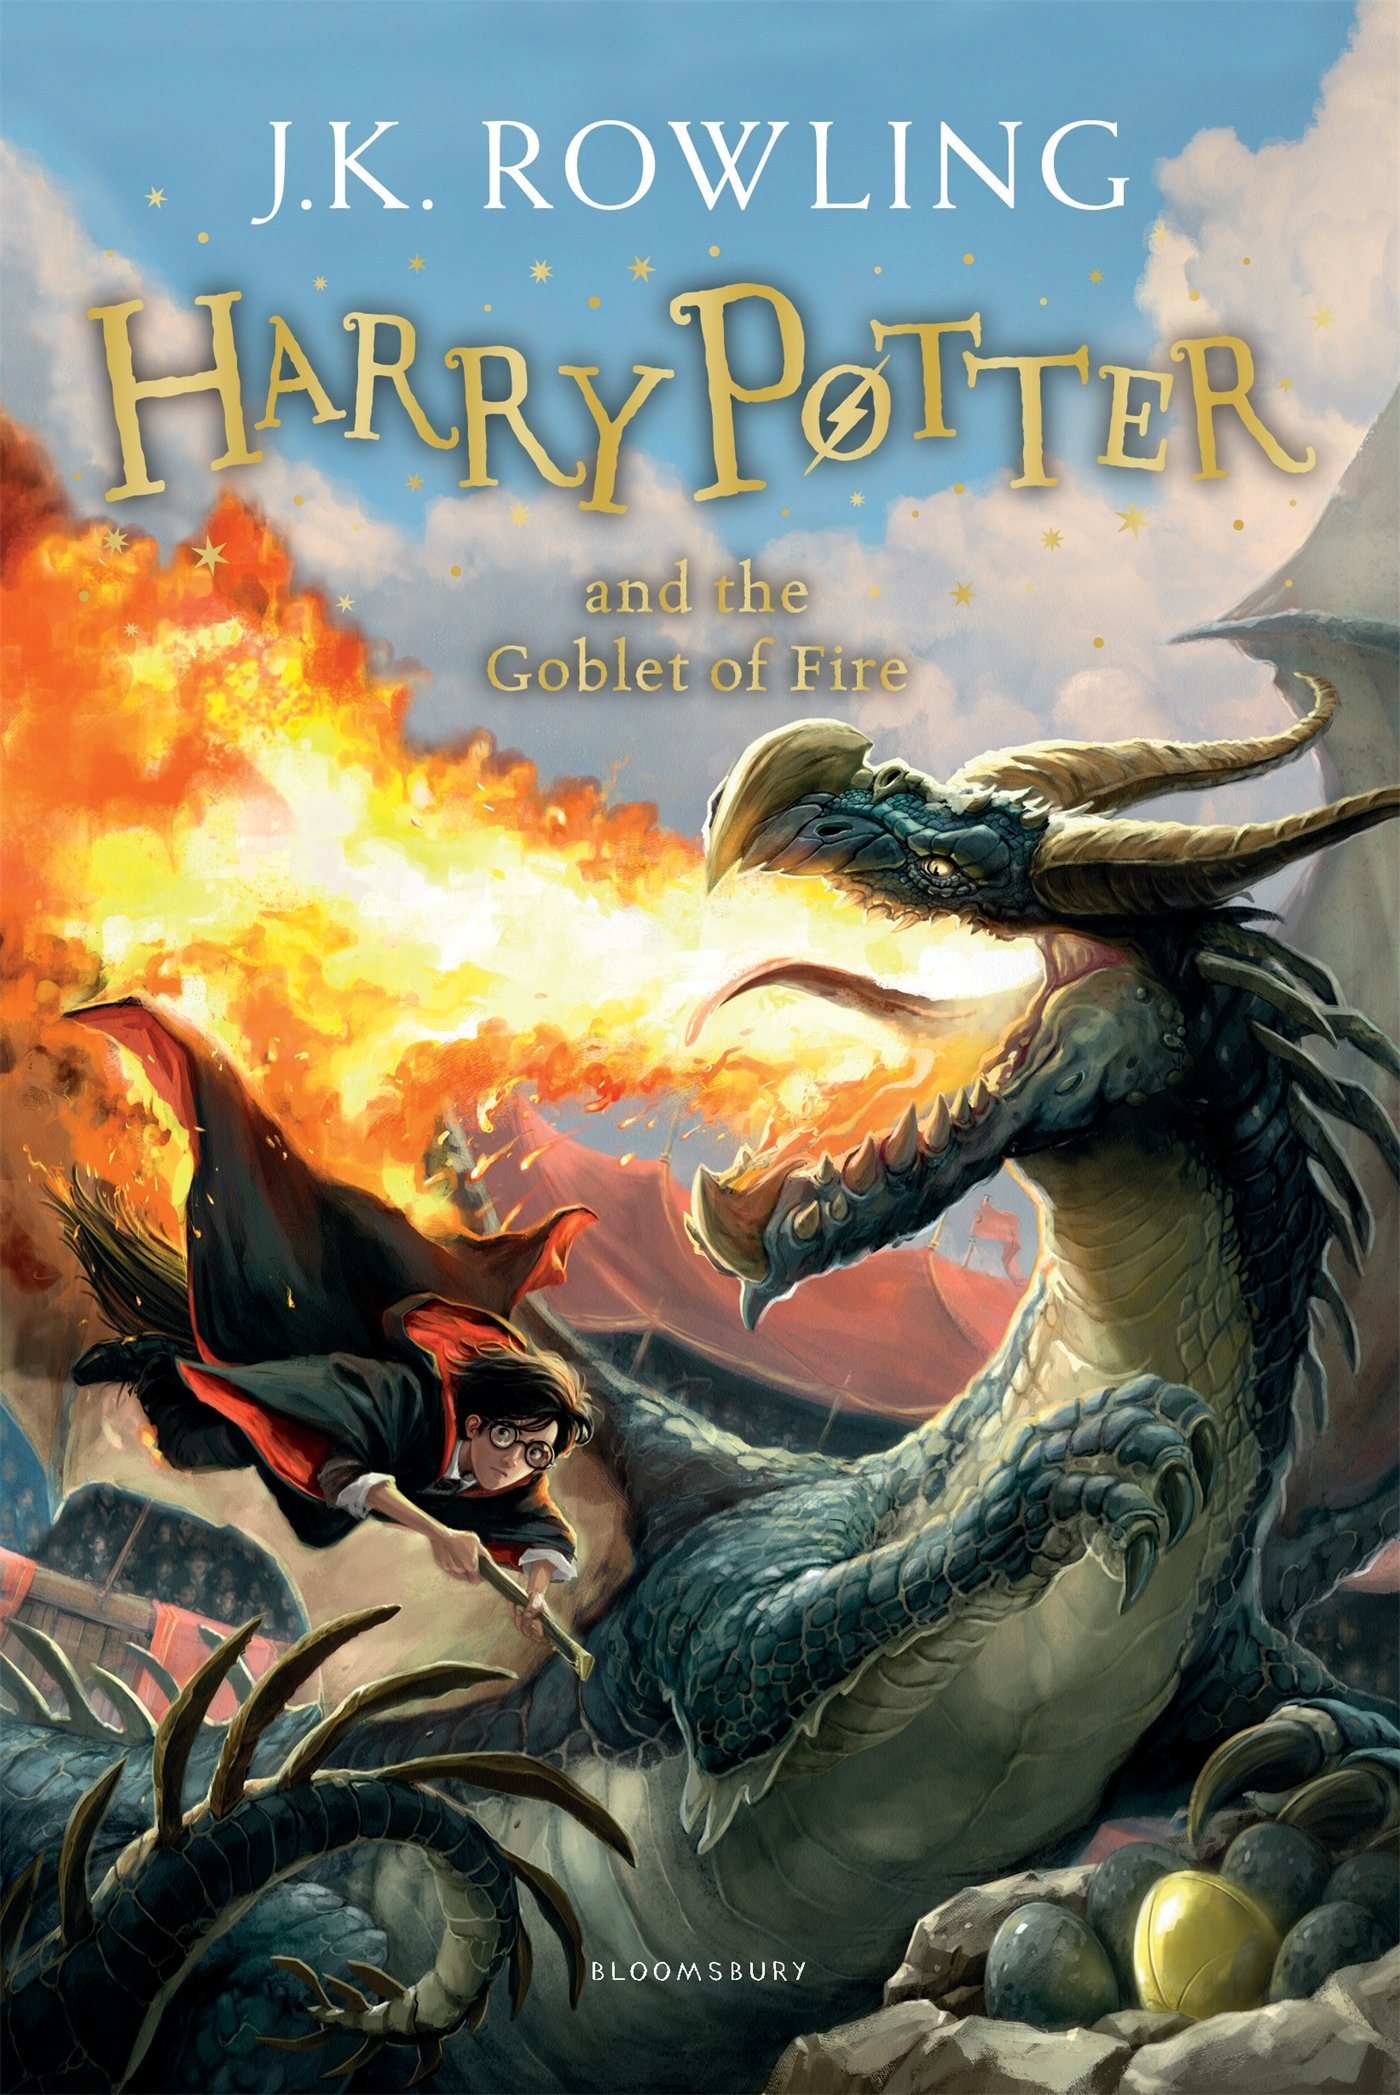 Harry Potter and the Goblet of Fire Novel by J. K. Rowling